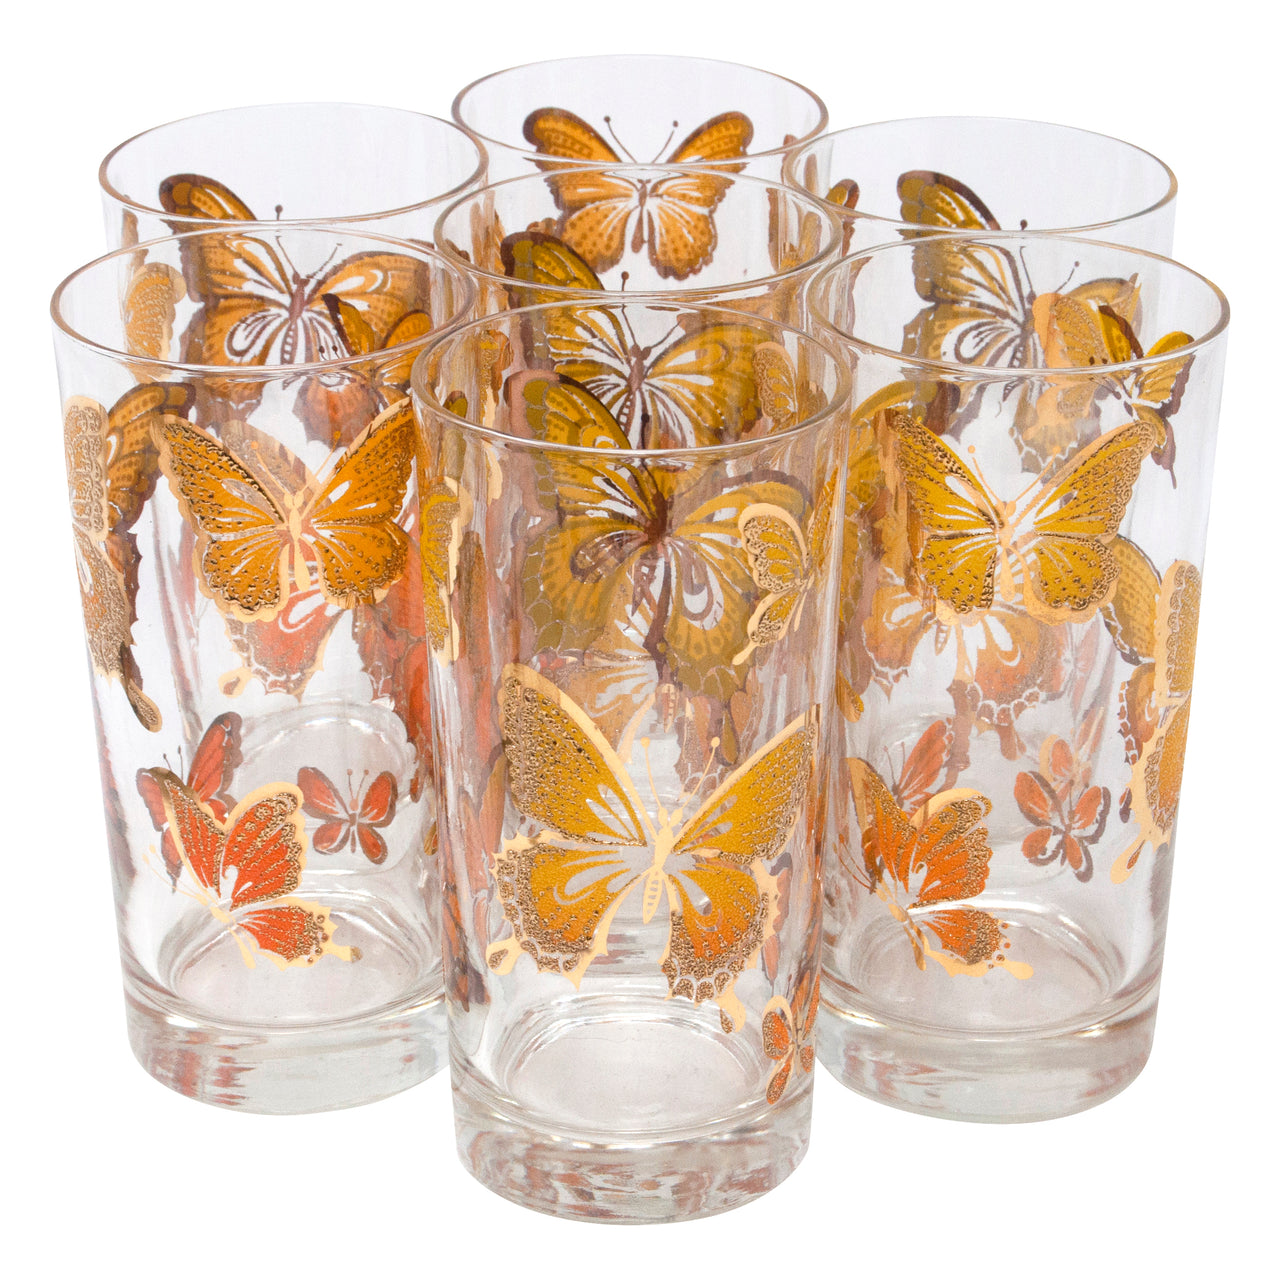 Vintage Gold Yellow and Orange Textured Butterfly Collins Glasses | The Hour Shop